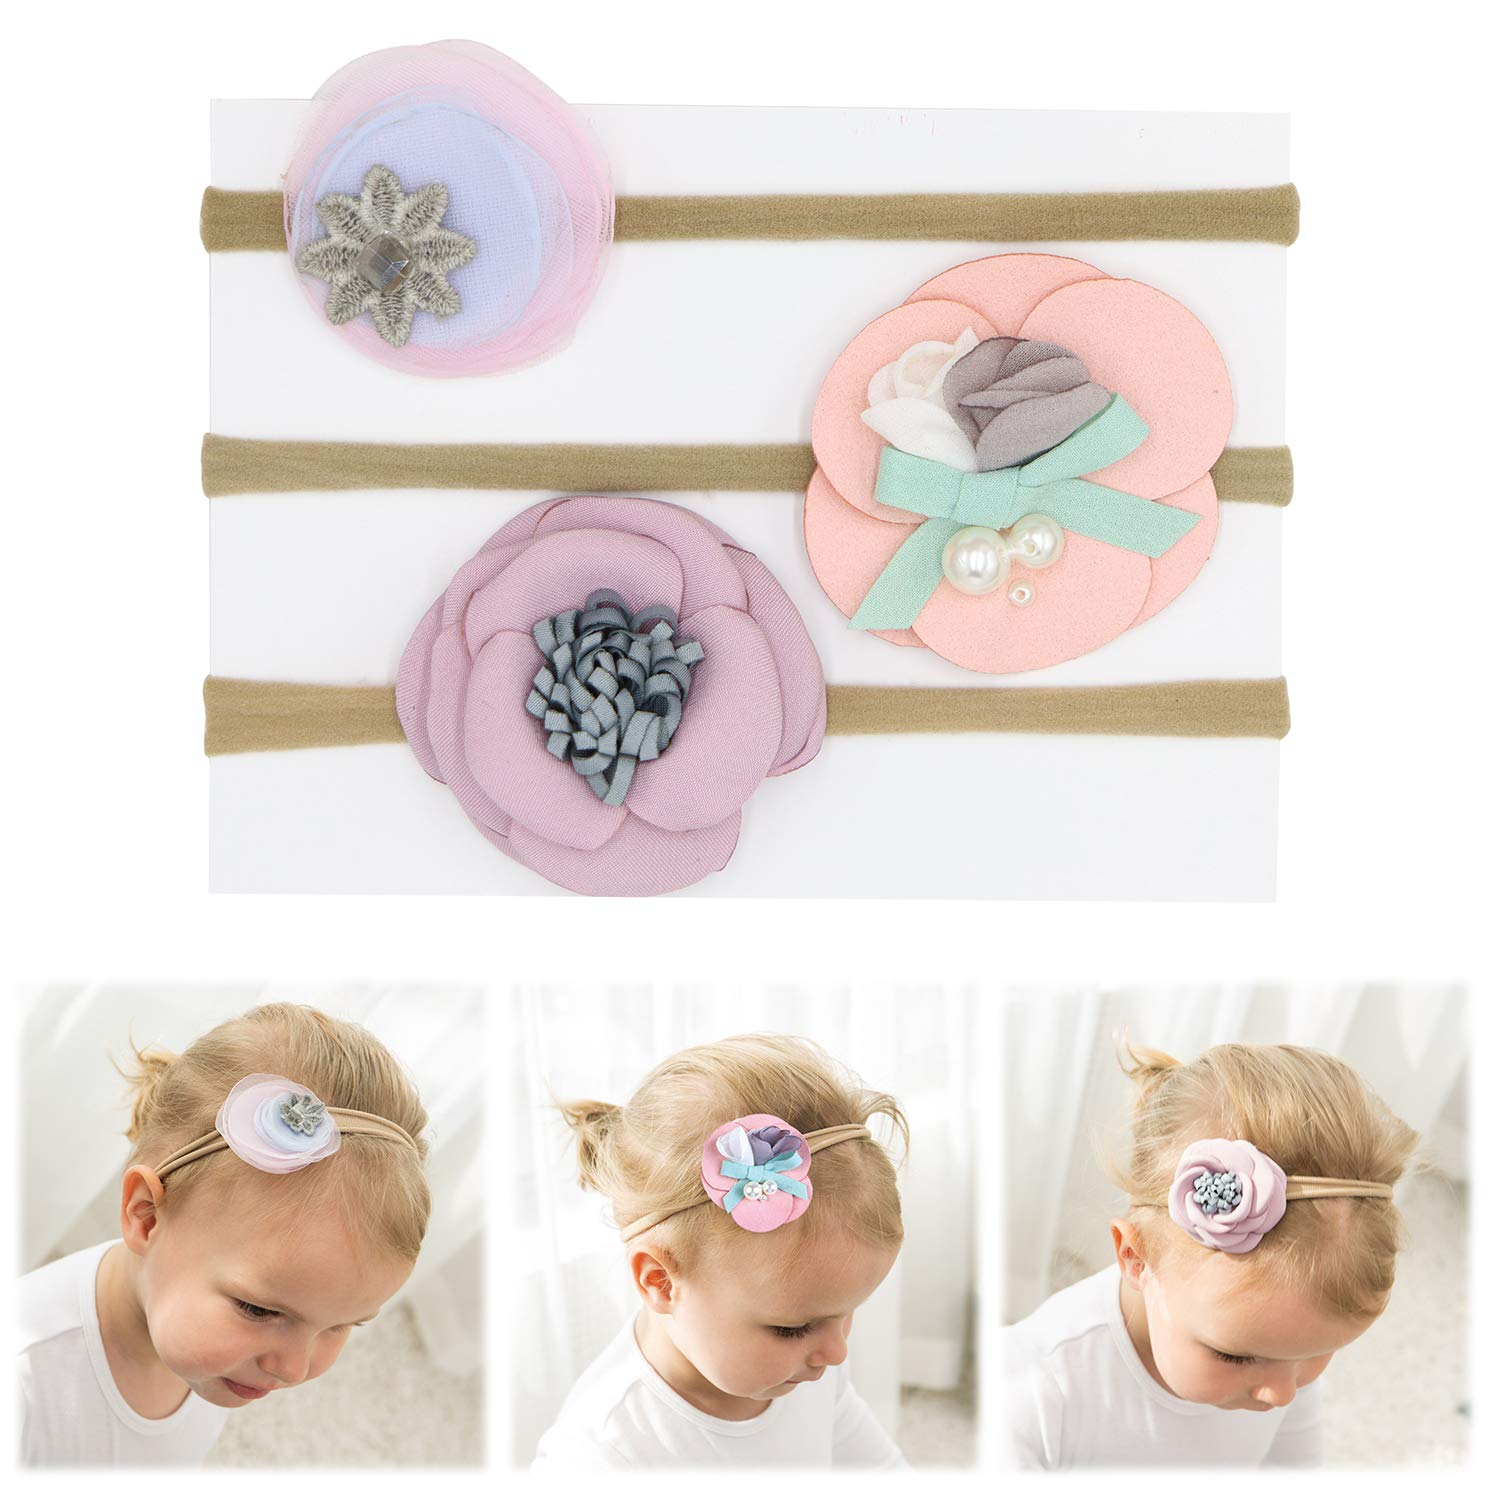 FANCY CLOUDS Baby Girl Headbands with Bows and Flowers,Soft Nylon Knot Hair Accessories for Newborn Infant Toddler Girls (set1)